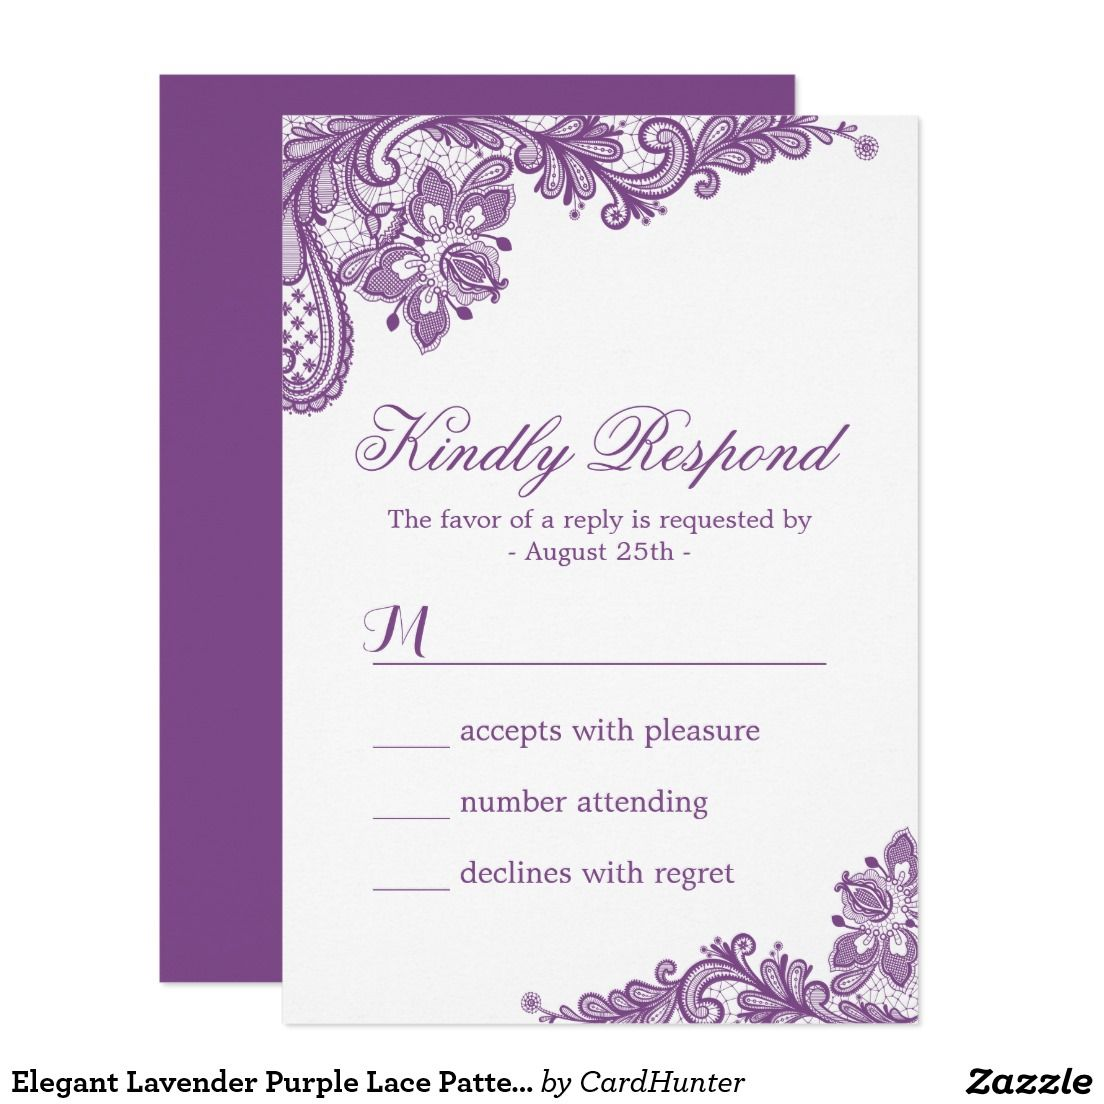 Elegant Lavender Purple Lace Pattern Rsvp Card Purple Lace Lace